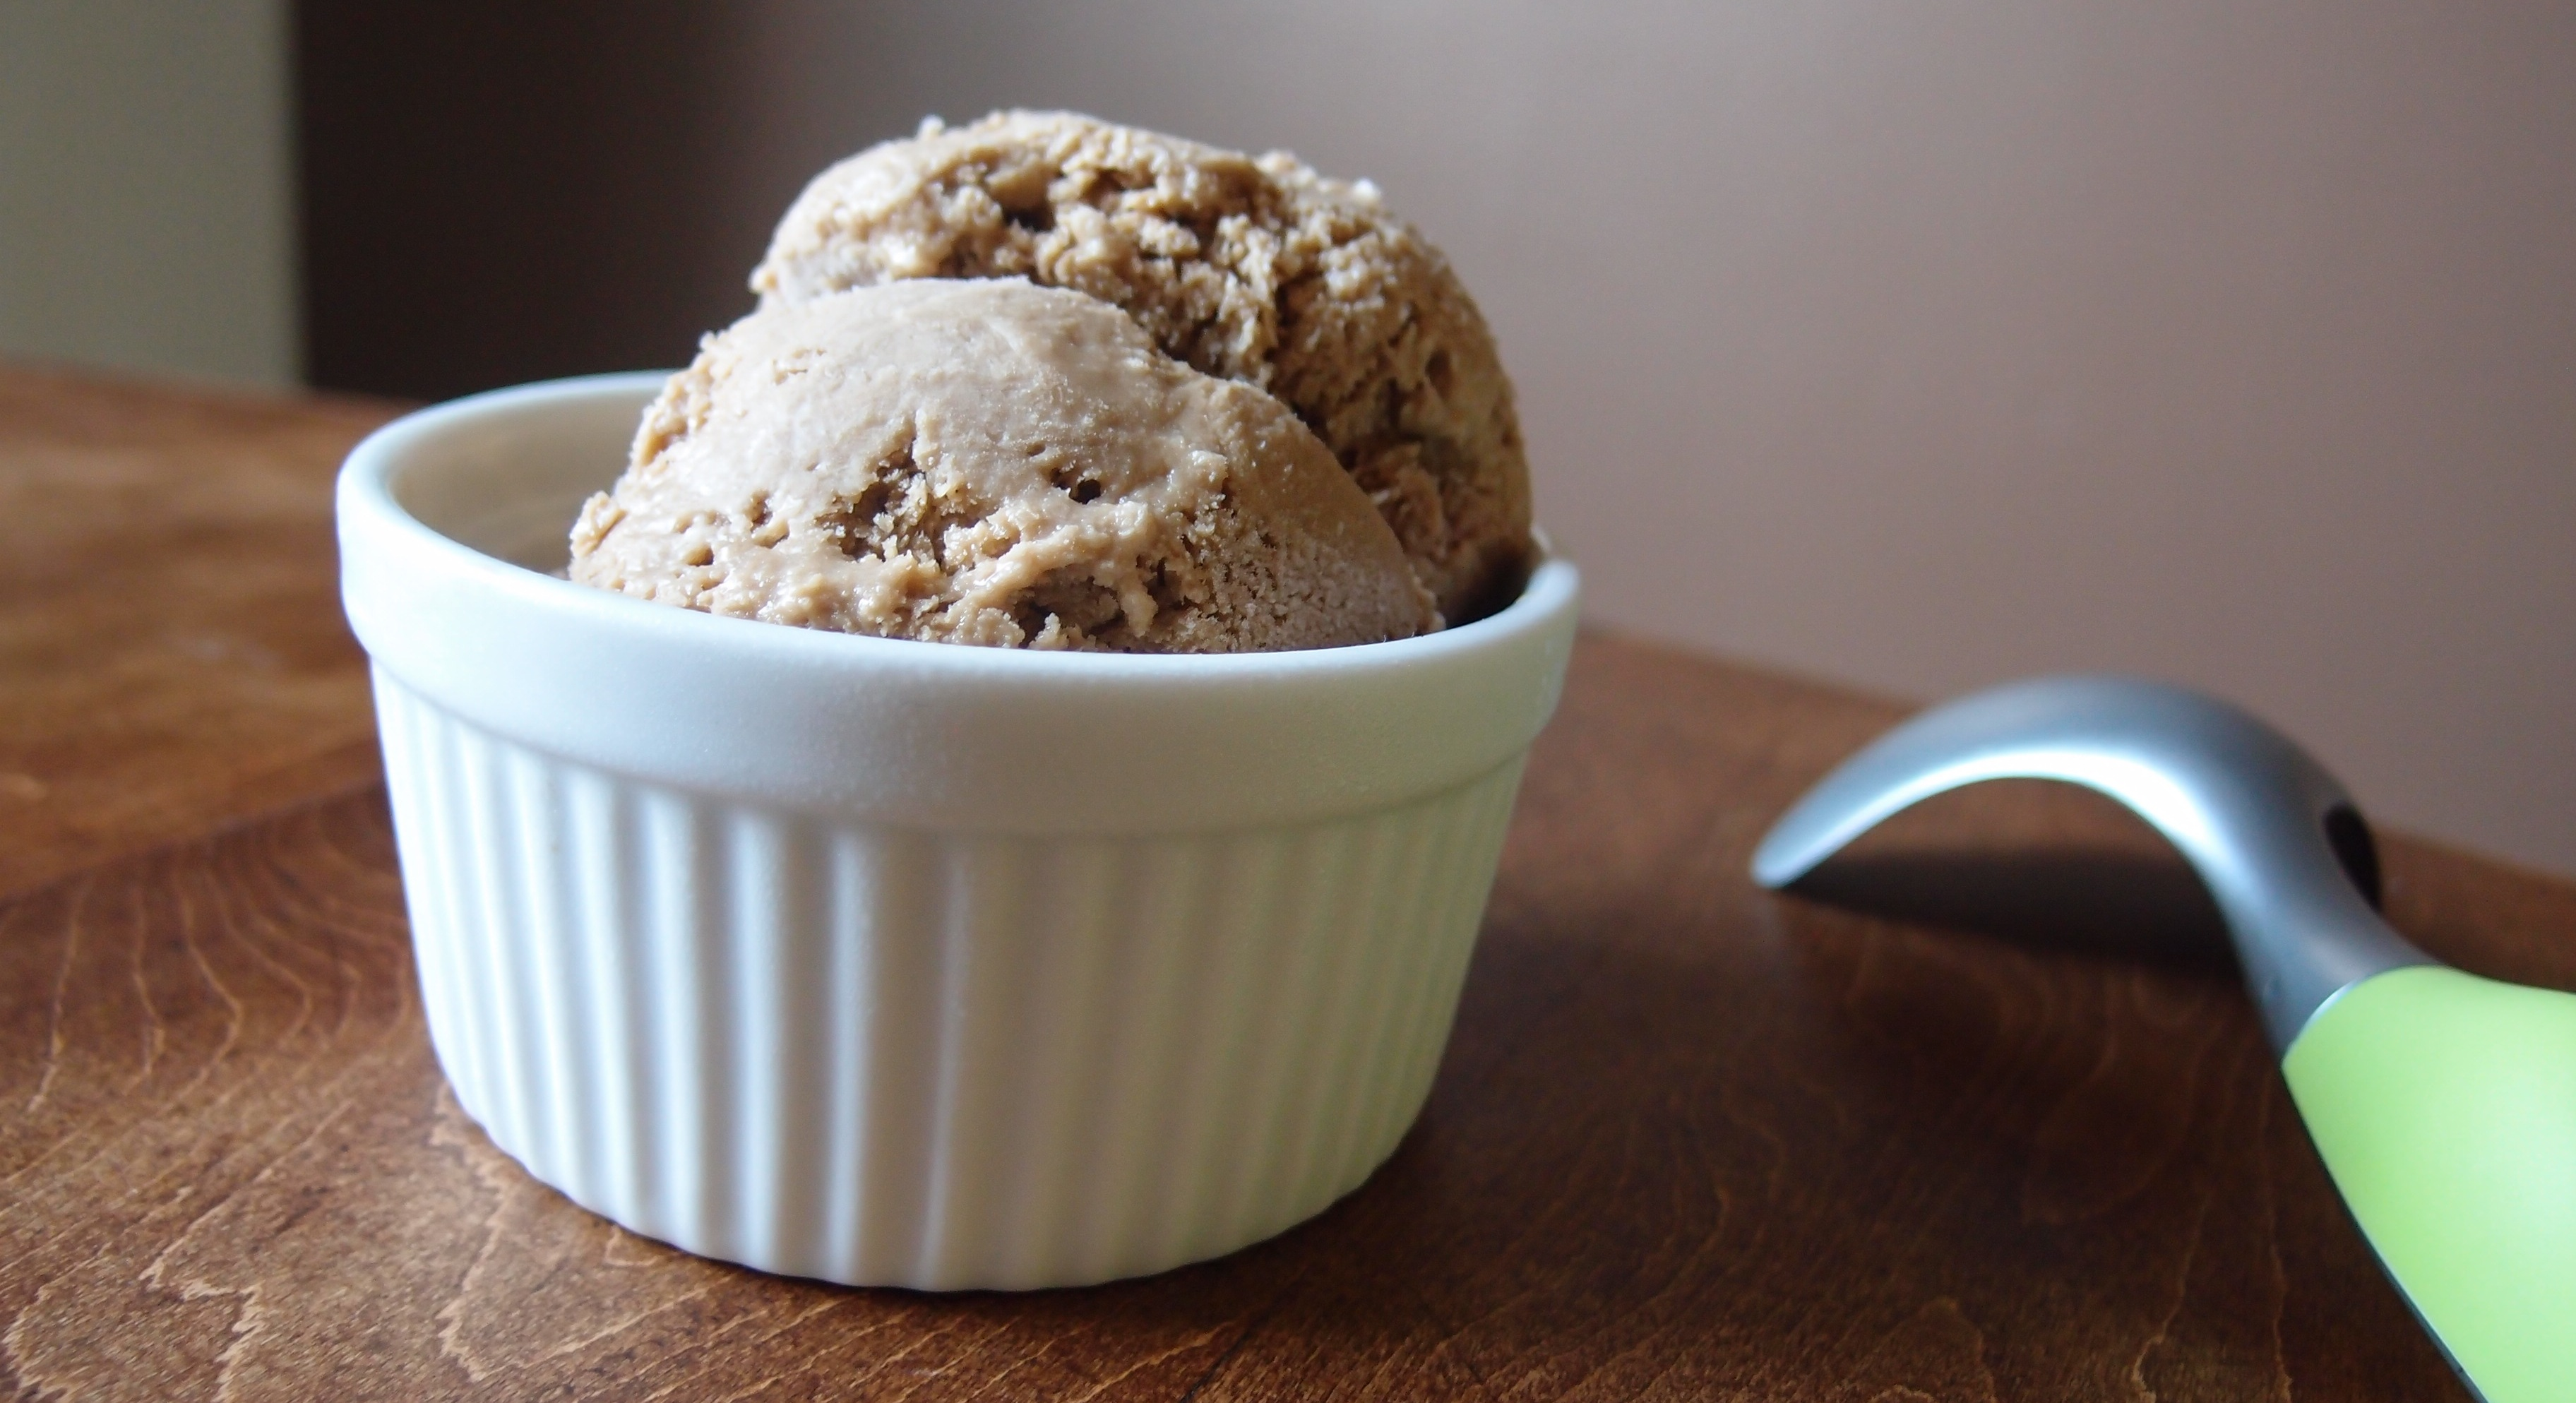 Mexican Chocolate Stout Ice Cream